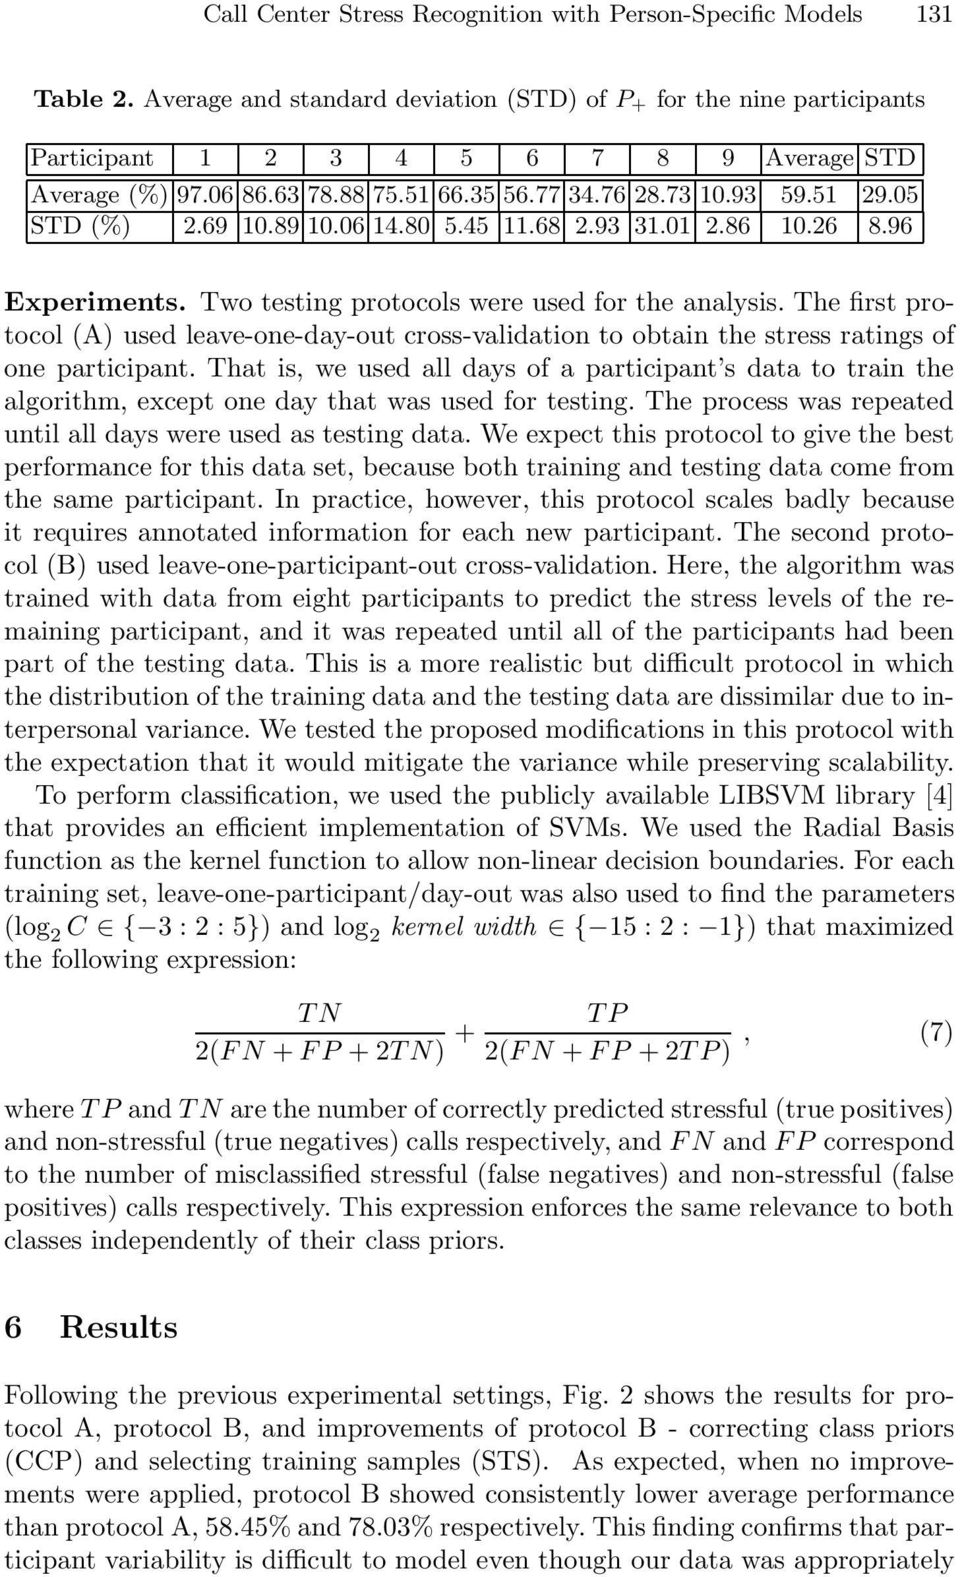 The first protocol (A) used leave-one-day-out cross-validation to obtain the stress ratings of one participant.